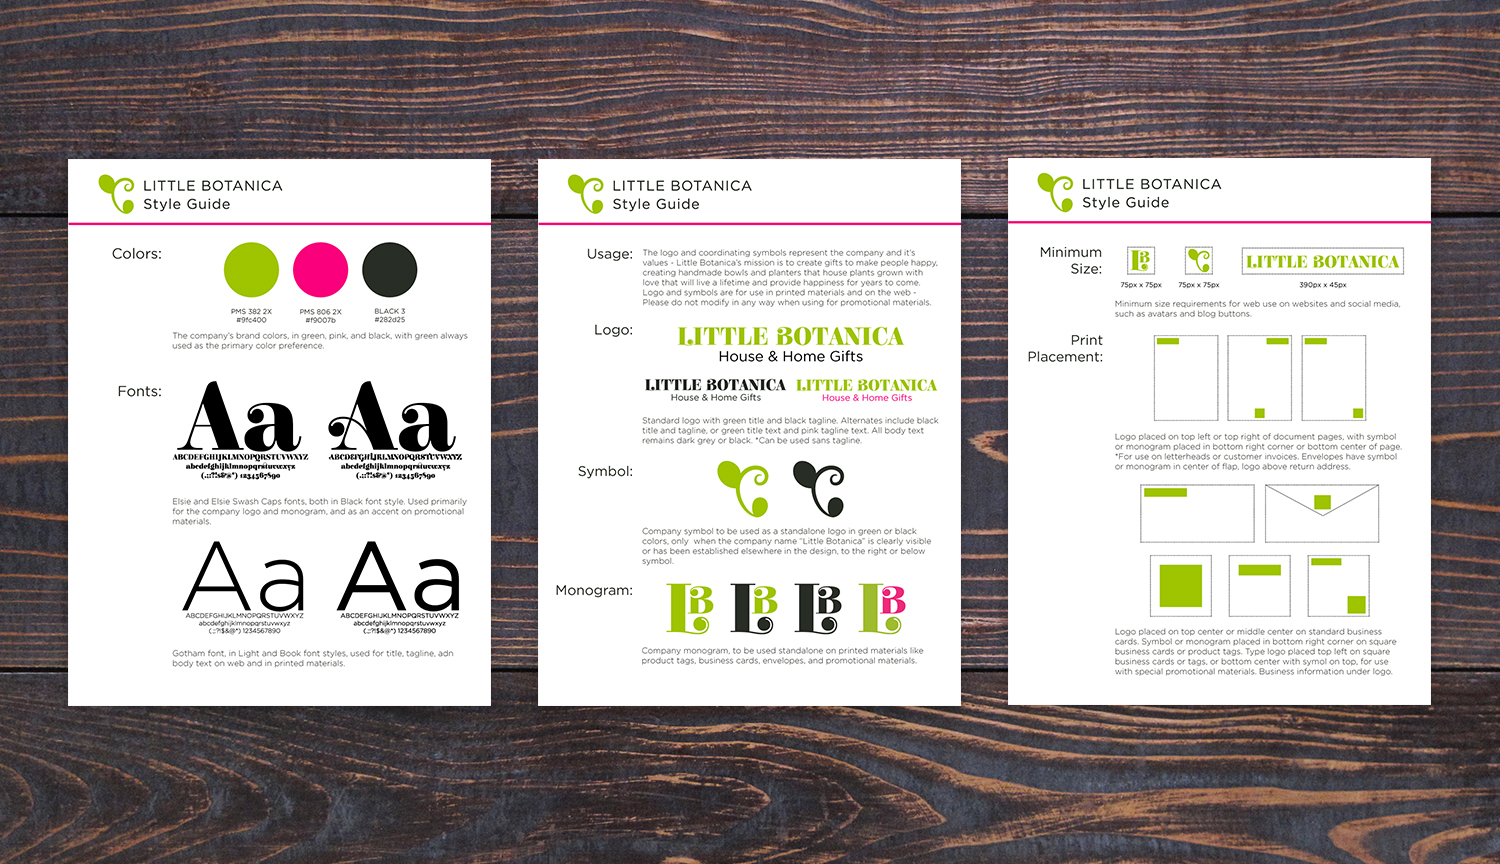 Company Style Guide